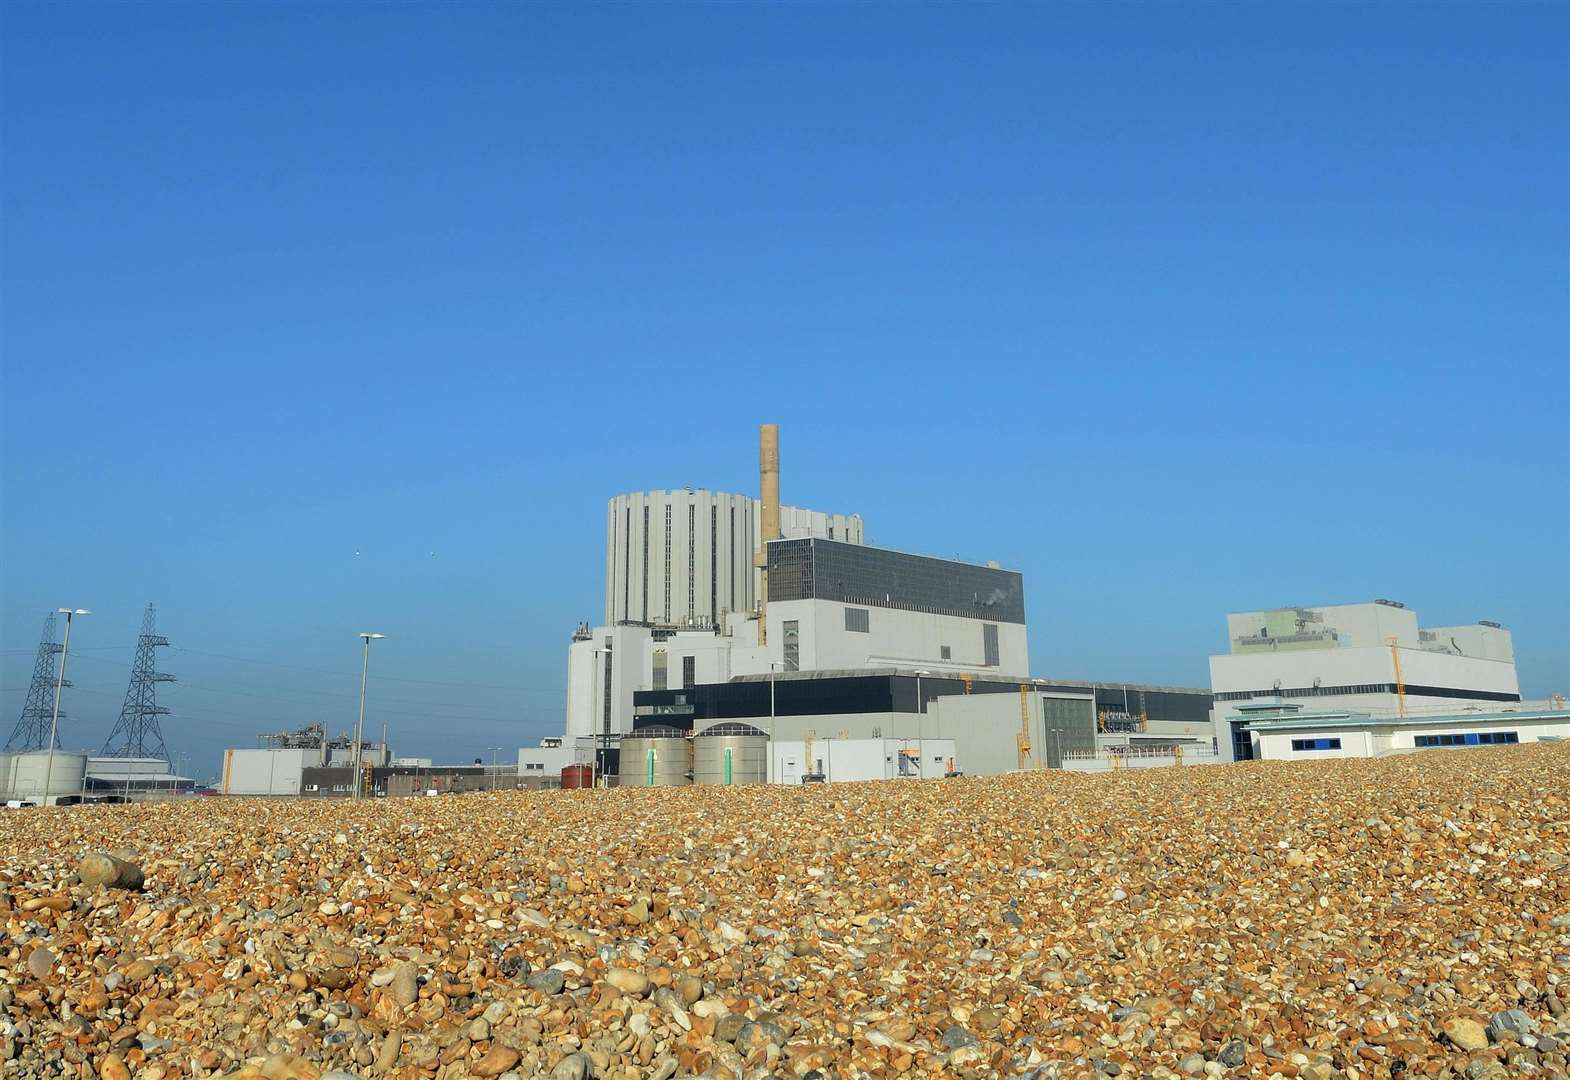 Nuclear power station due to come back online